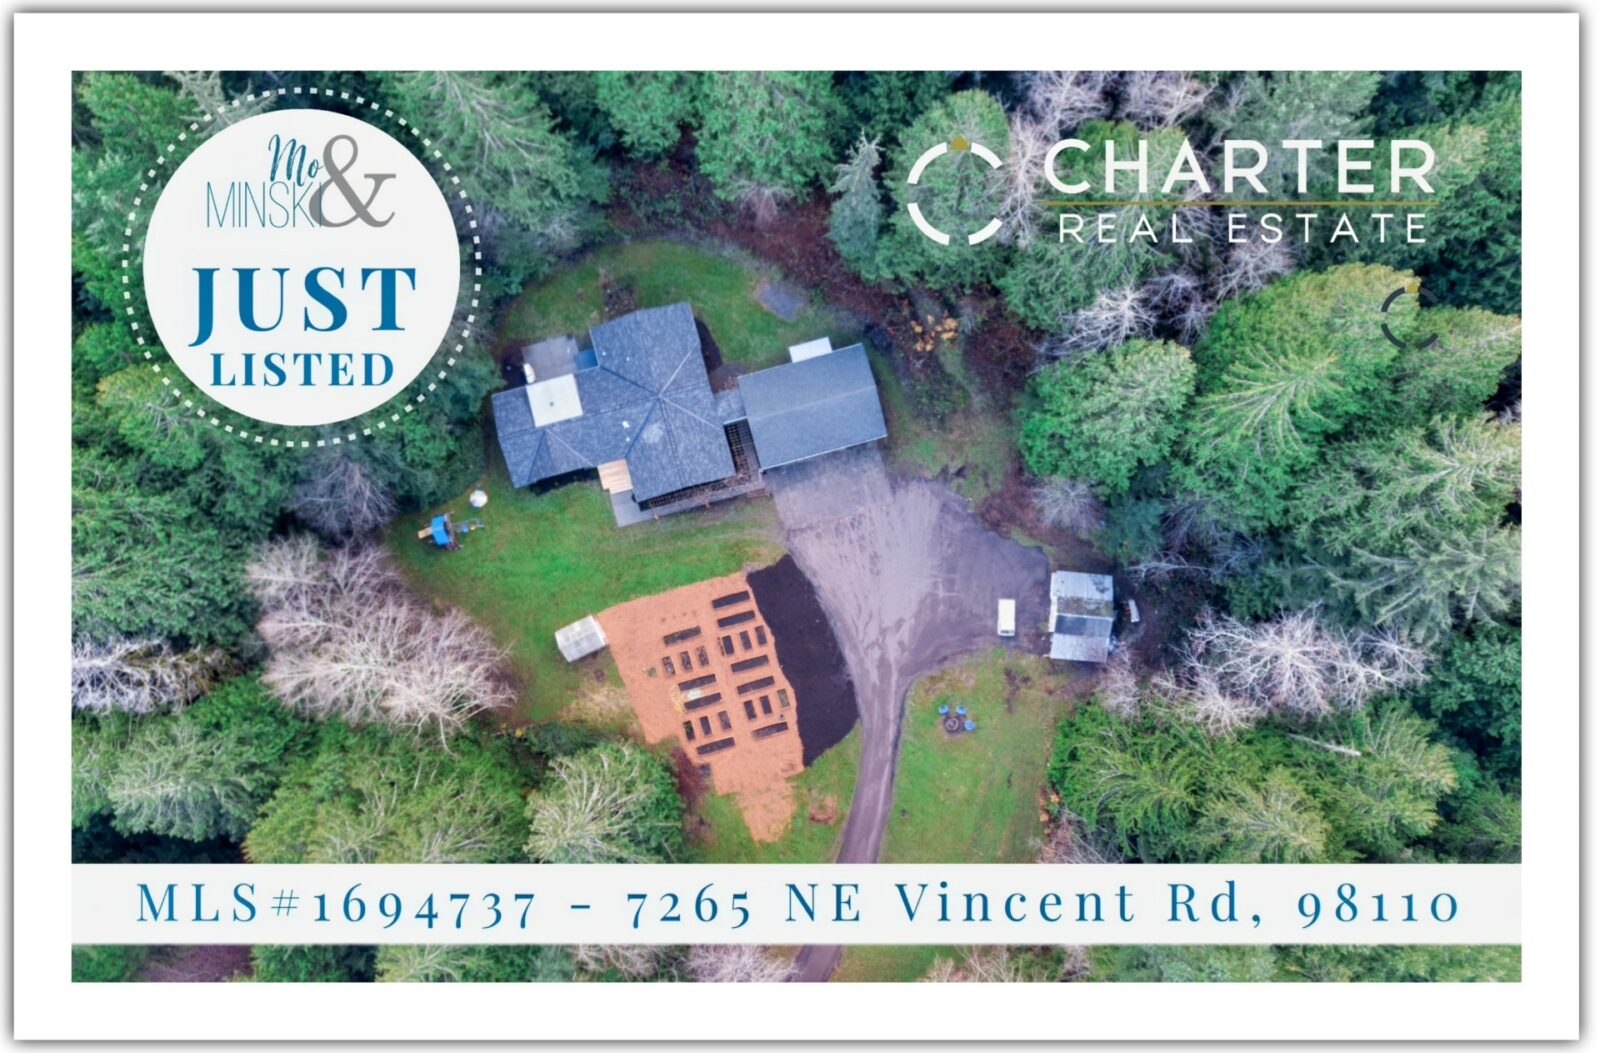 7265 NE VINCENT RD, BAINBRIDGE ISLAND _ 3 BR, 2 BT,  2,160 SF,  2.58 ACRES _ $795K _ MLS# 1694737